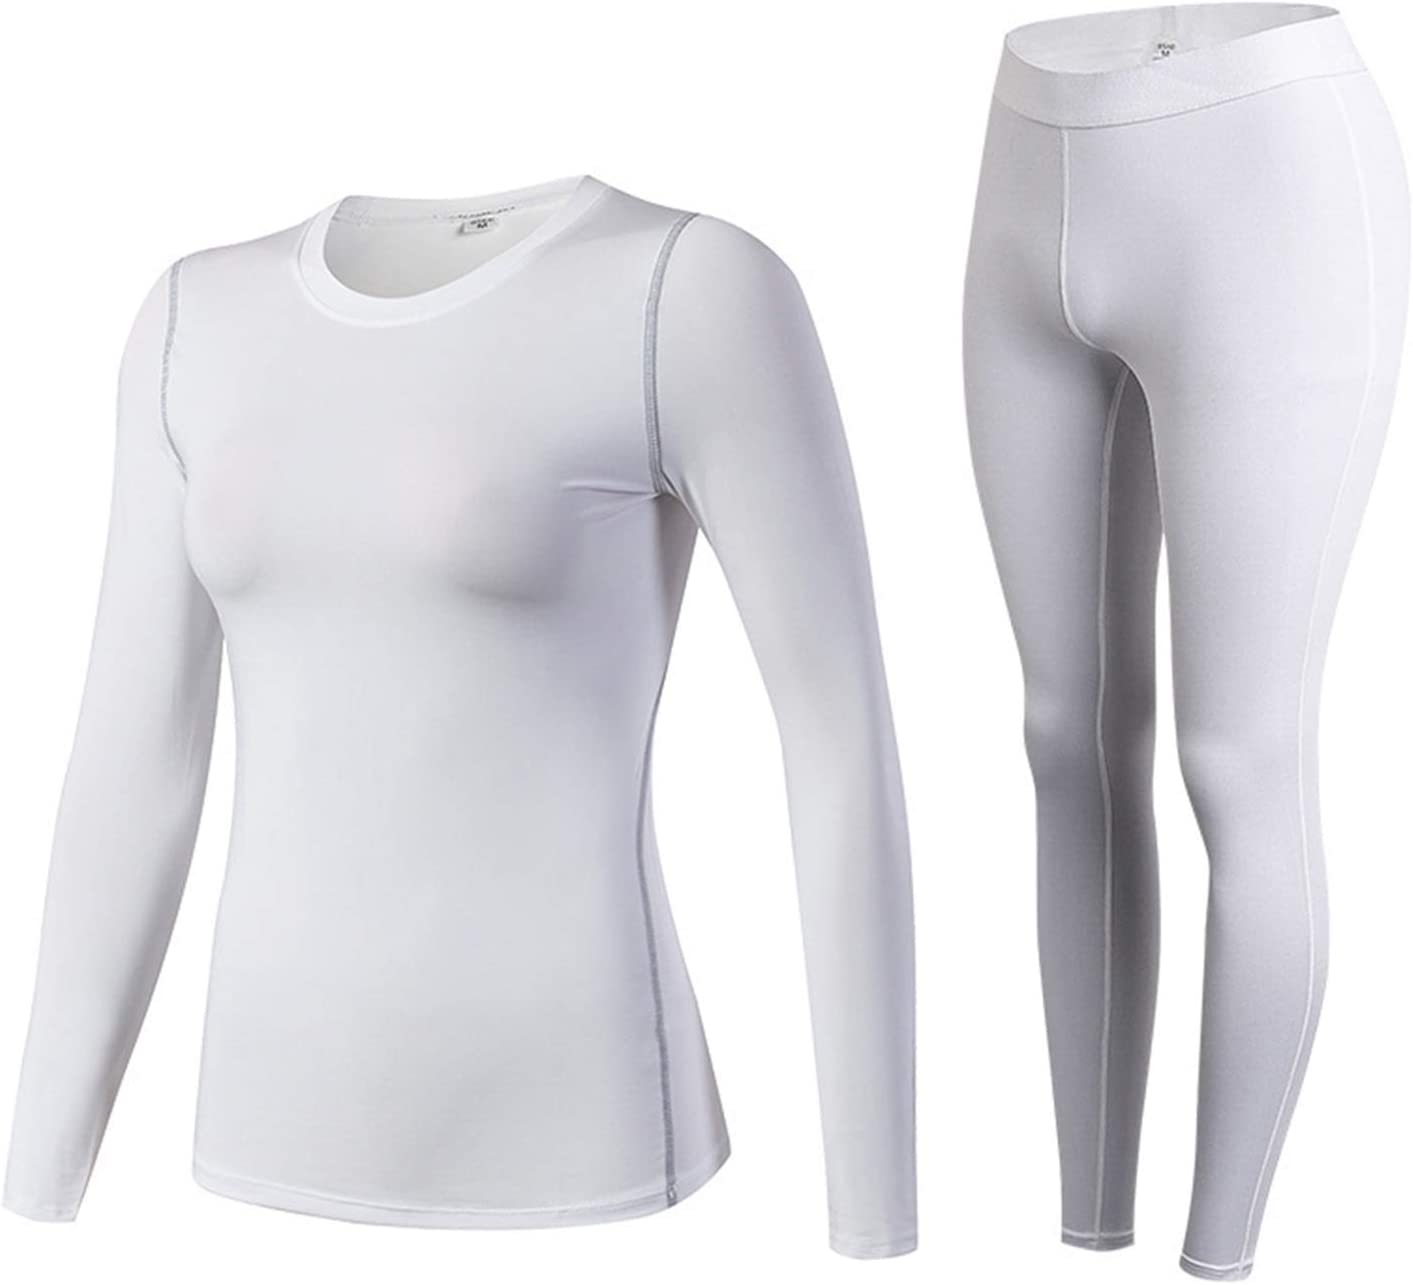 Glqwe O Neck Shirt Base Women Thermal Underwear Long Johns for Women Thermal Clothing Second Skin Winter Female Thermal Suit (Color : B Style White Set, Size : Small)